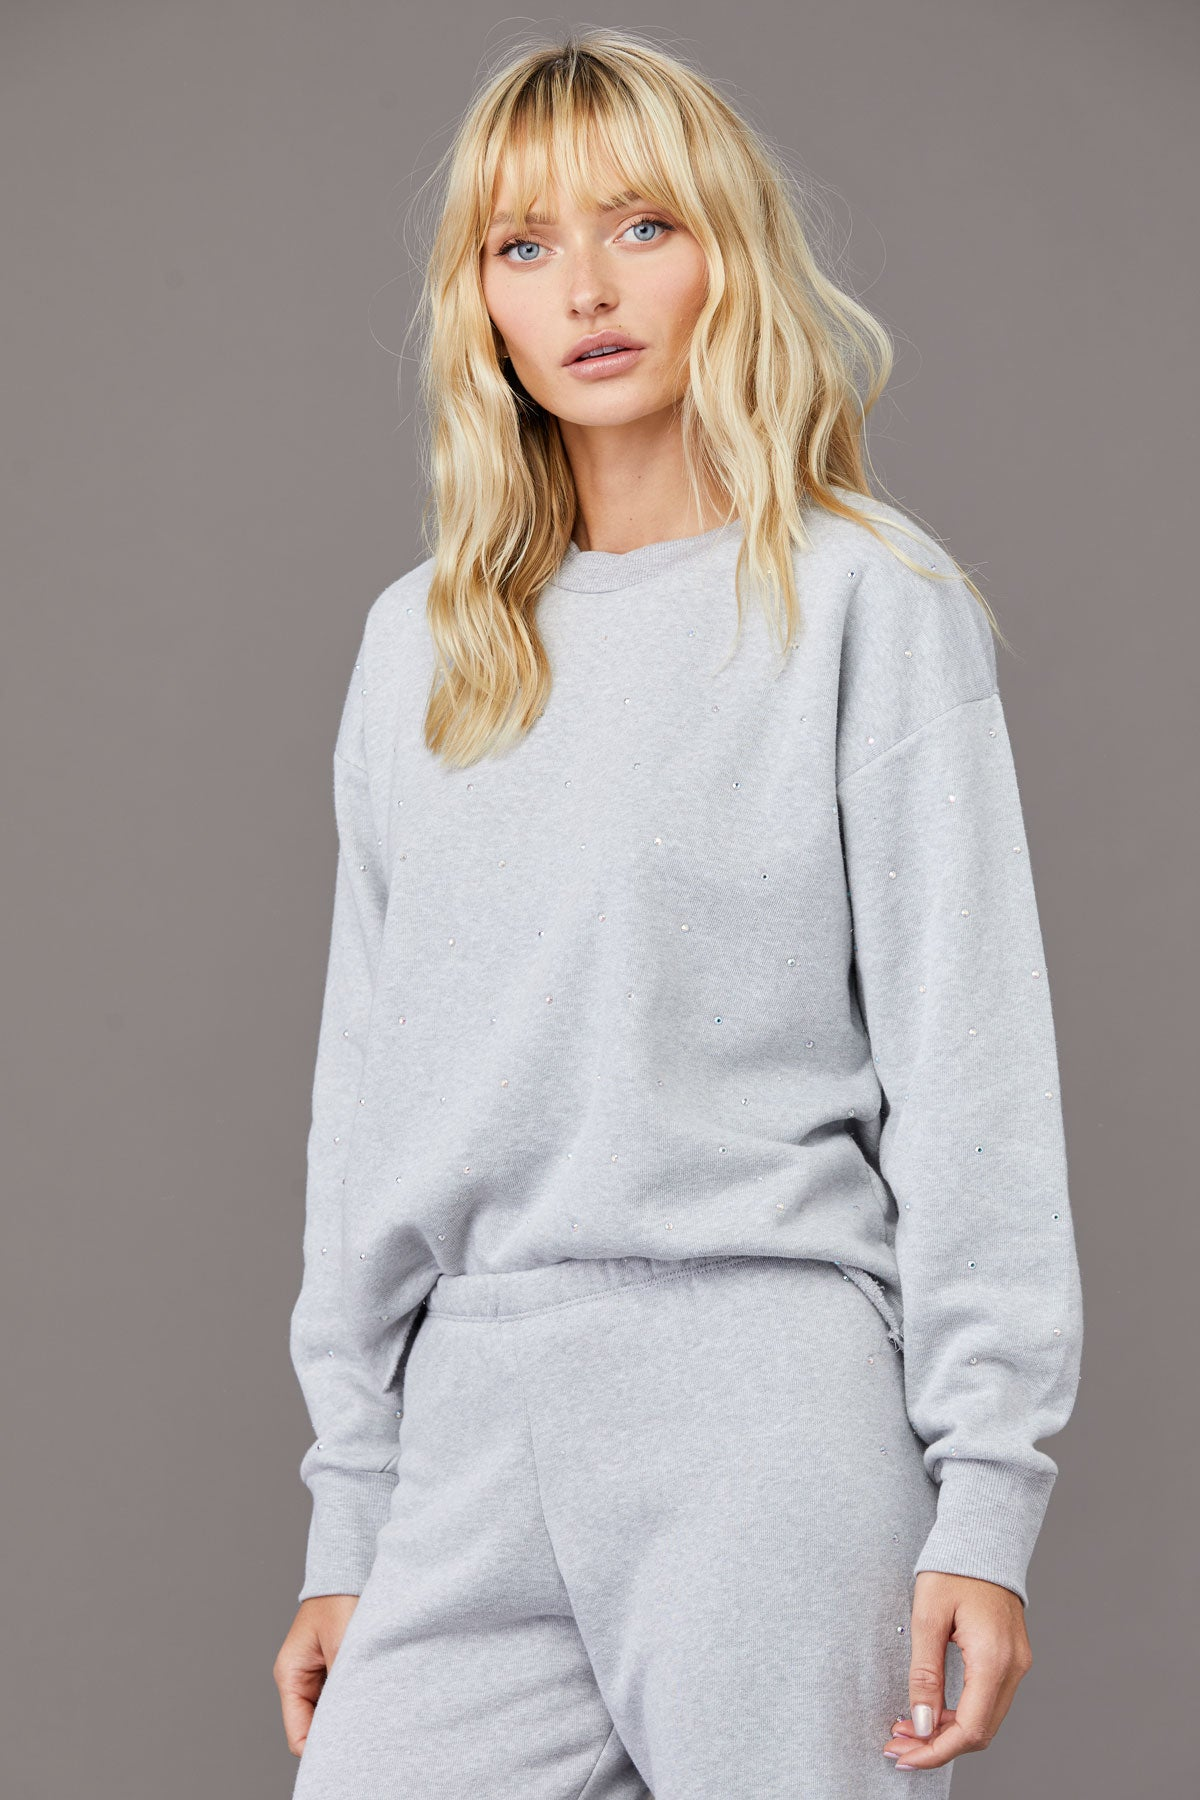 LNA Dancer Rhinestone Sweatshirt in grey